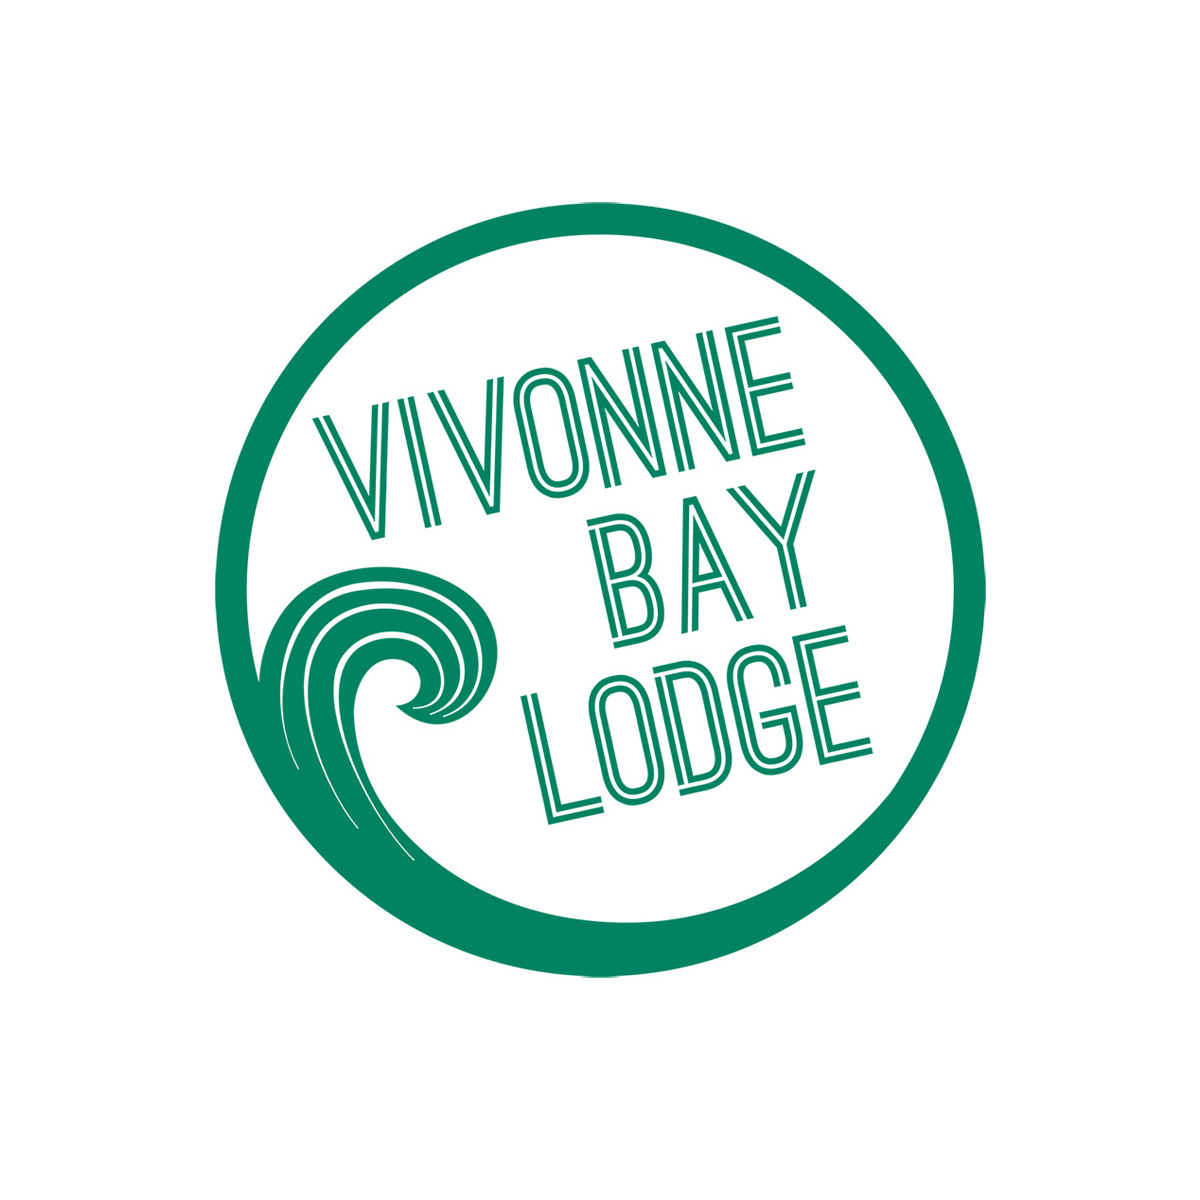 Square logo vivonne bay lodge